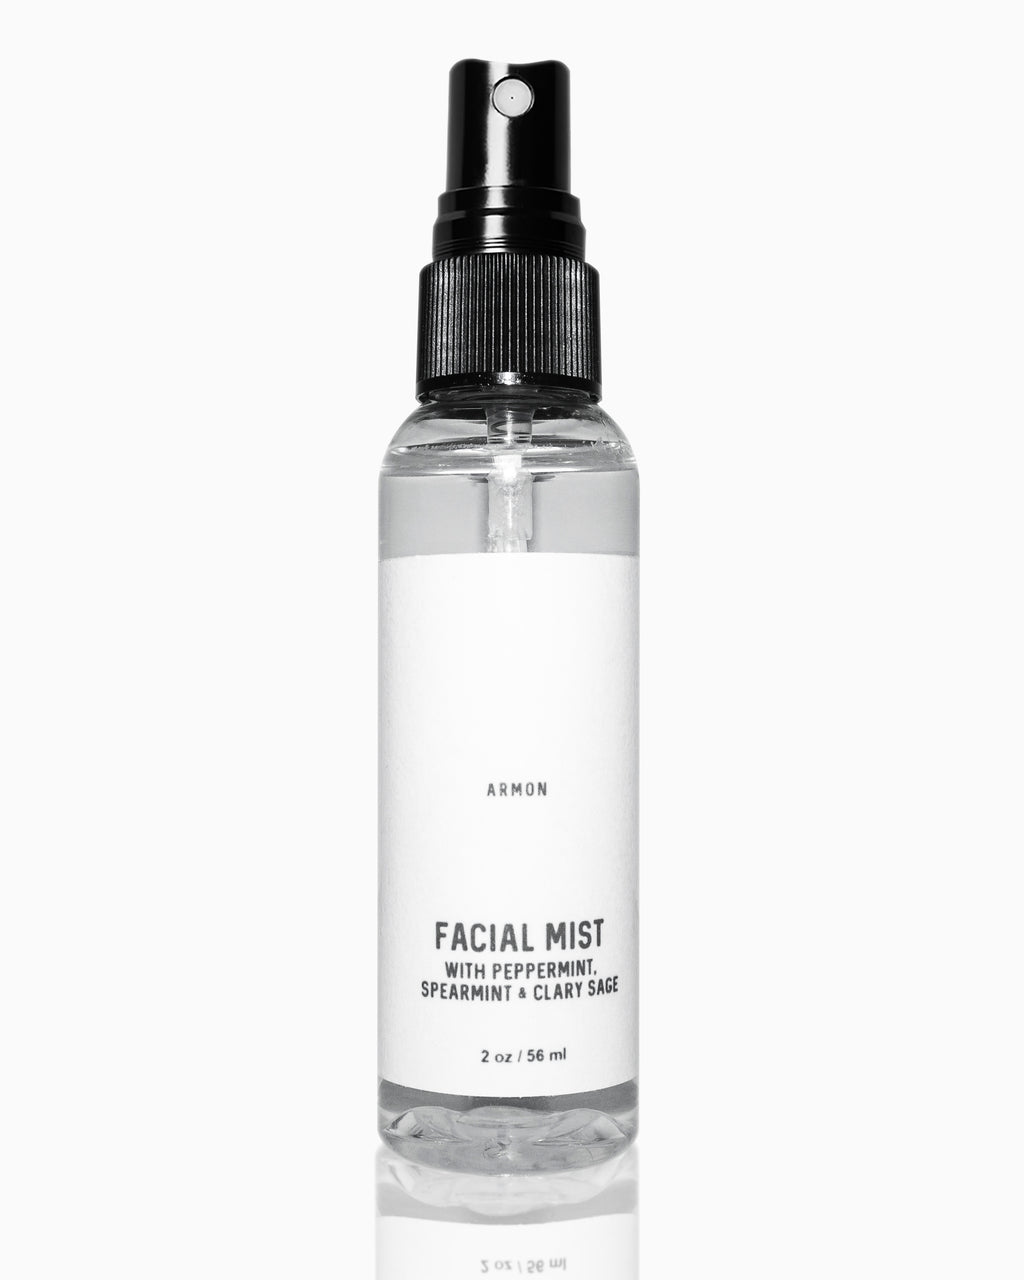 FACIAL MIST WITH PEPPERMINT, SPEARMINT & CLARY SAGE